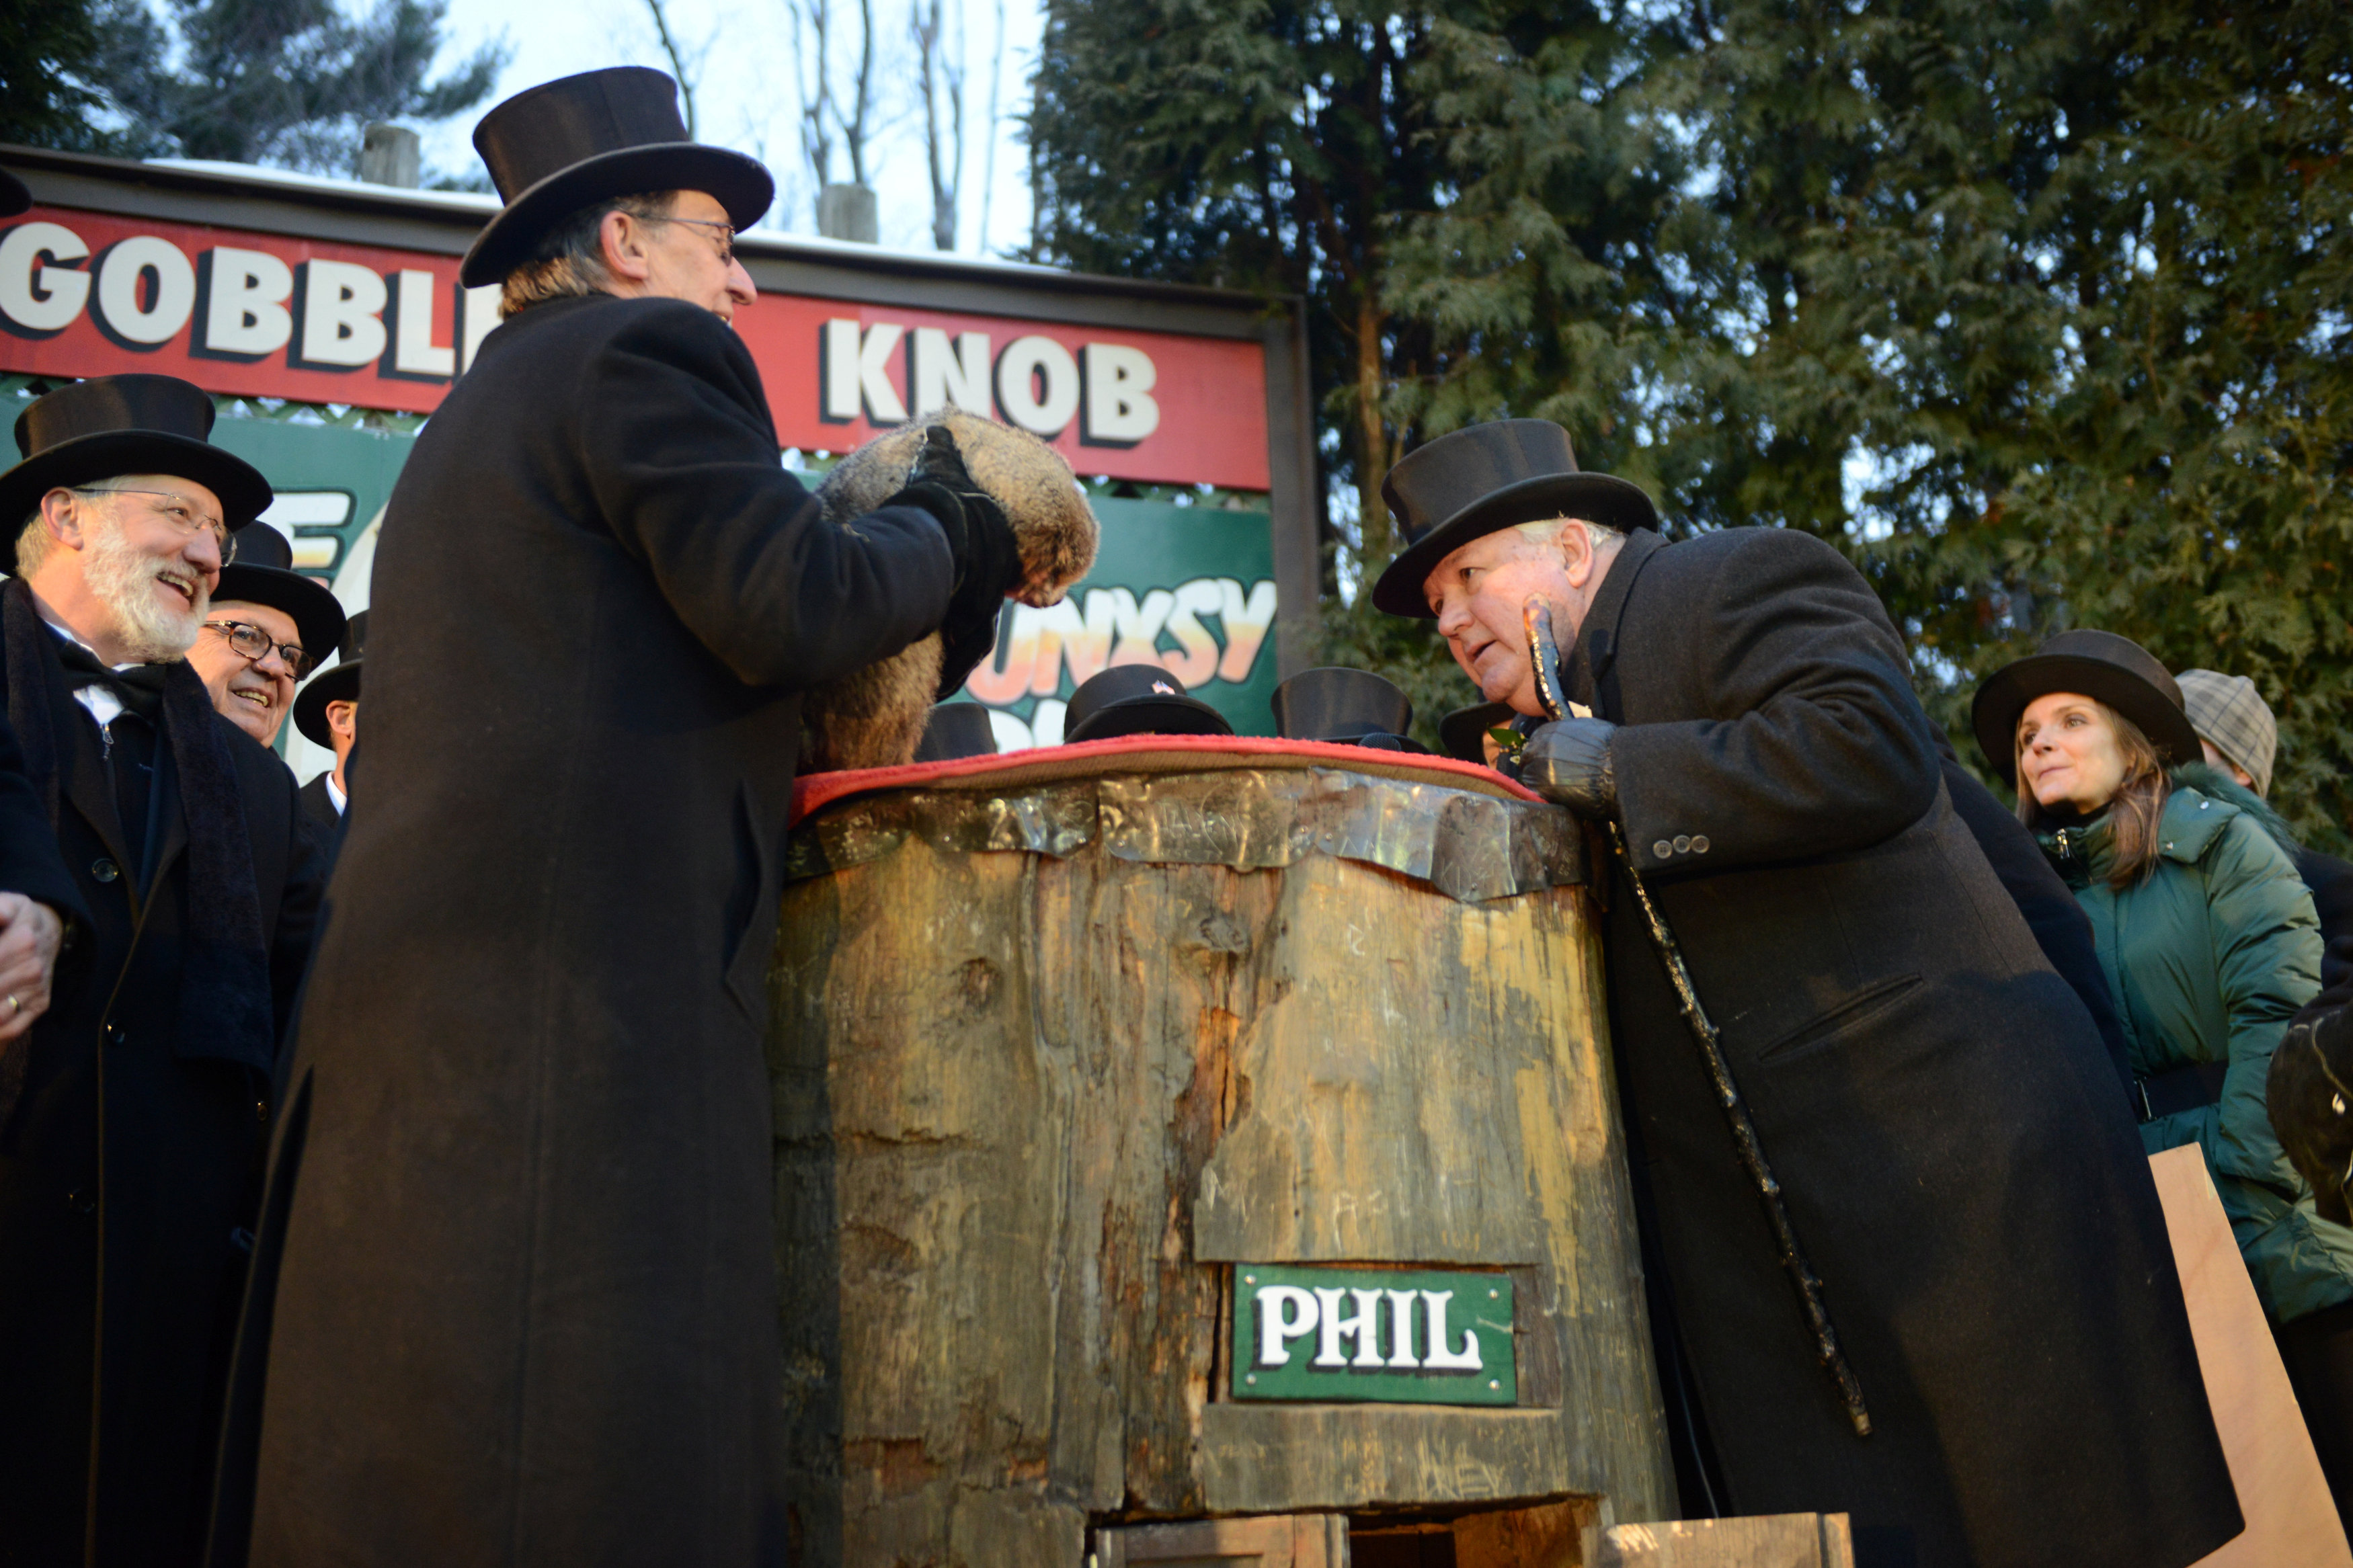 Groundhog Club President Bill Deeley listens to Punxsutawney Phil for his forecast while handler Ron Ploucha holds him at Gobbler's Knob on the 131st Groundhog Day in Punxsutawney, Pennsylvania, U.S. February 2, 2017.